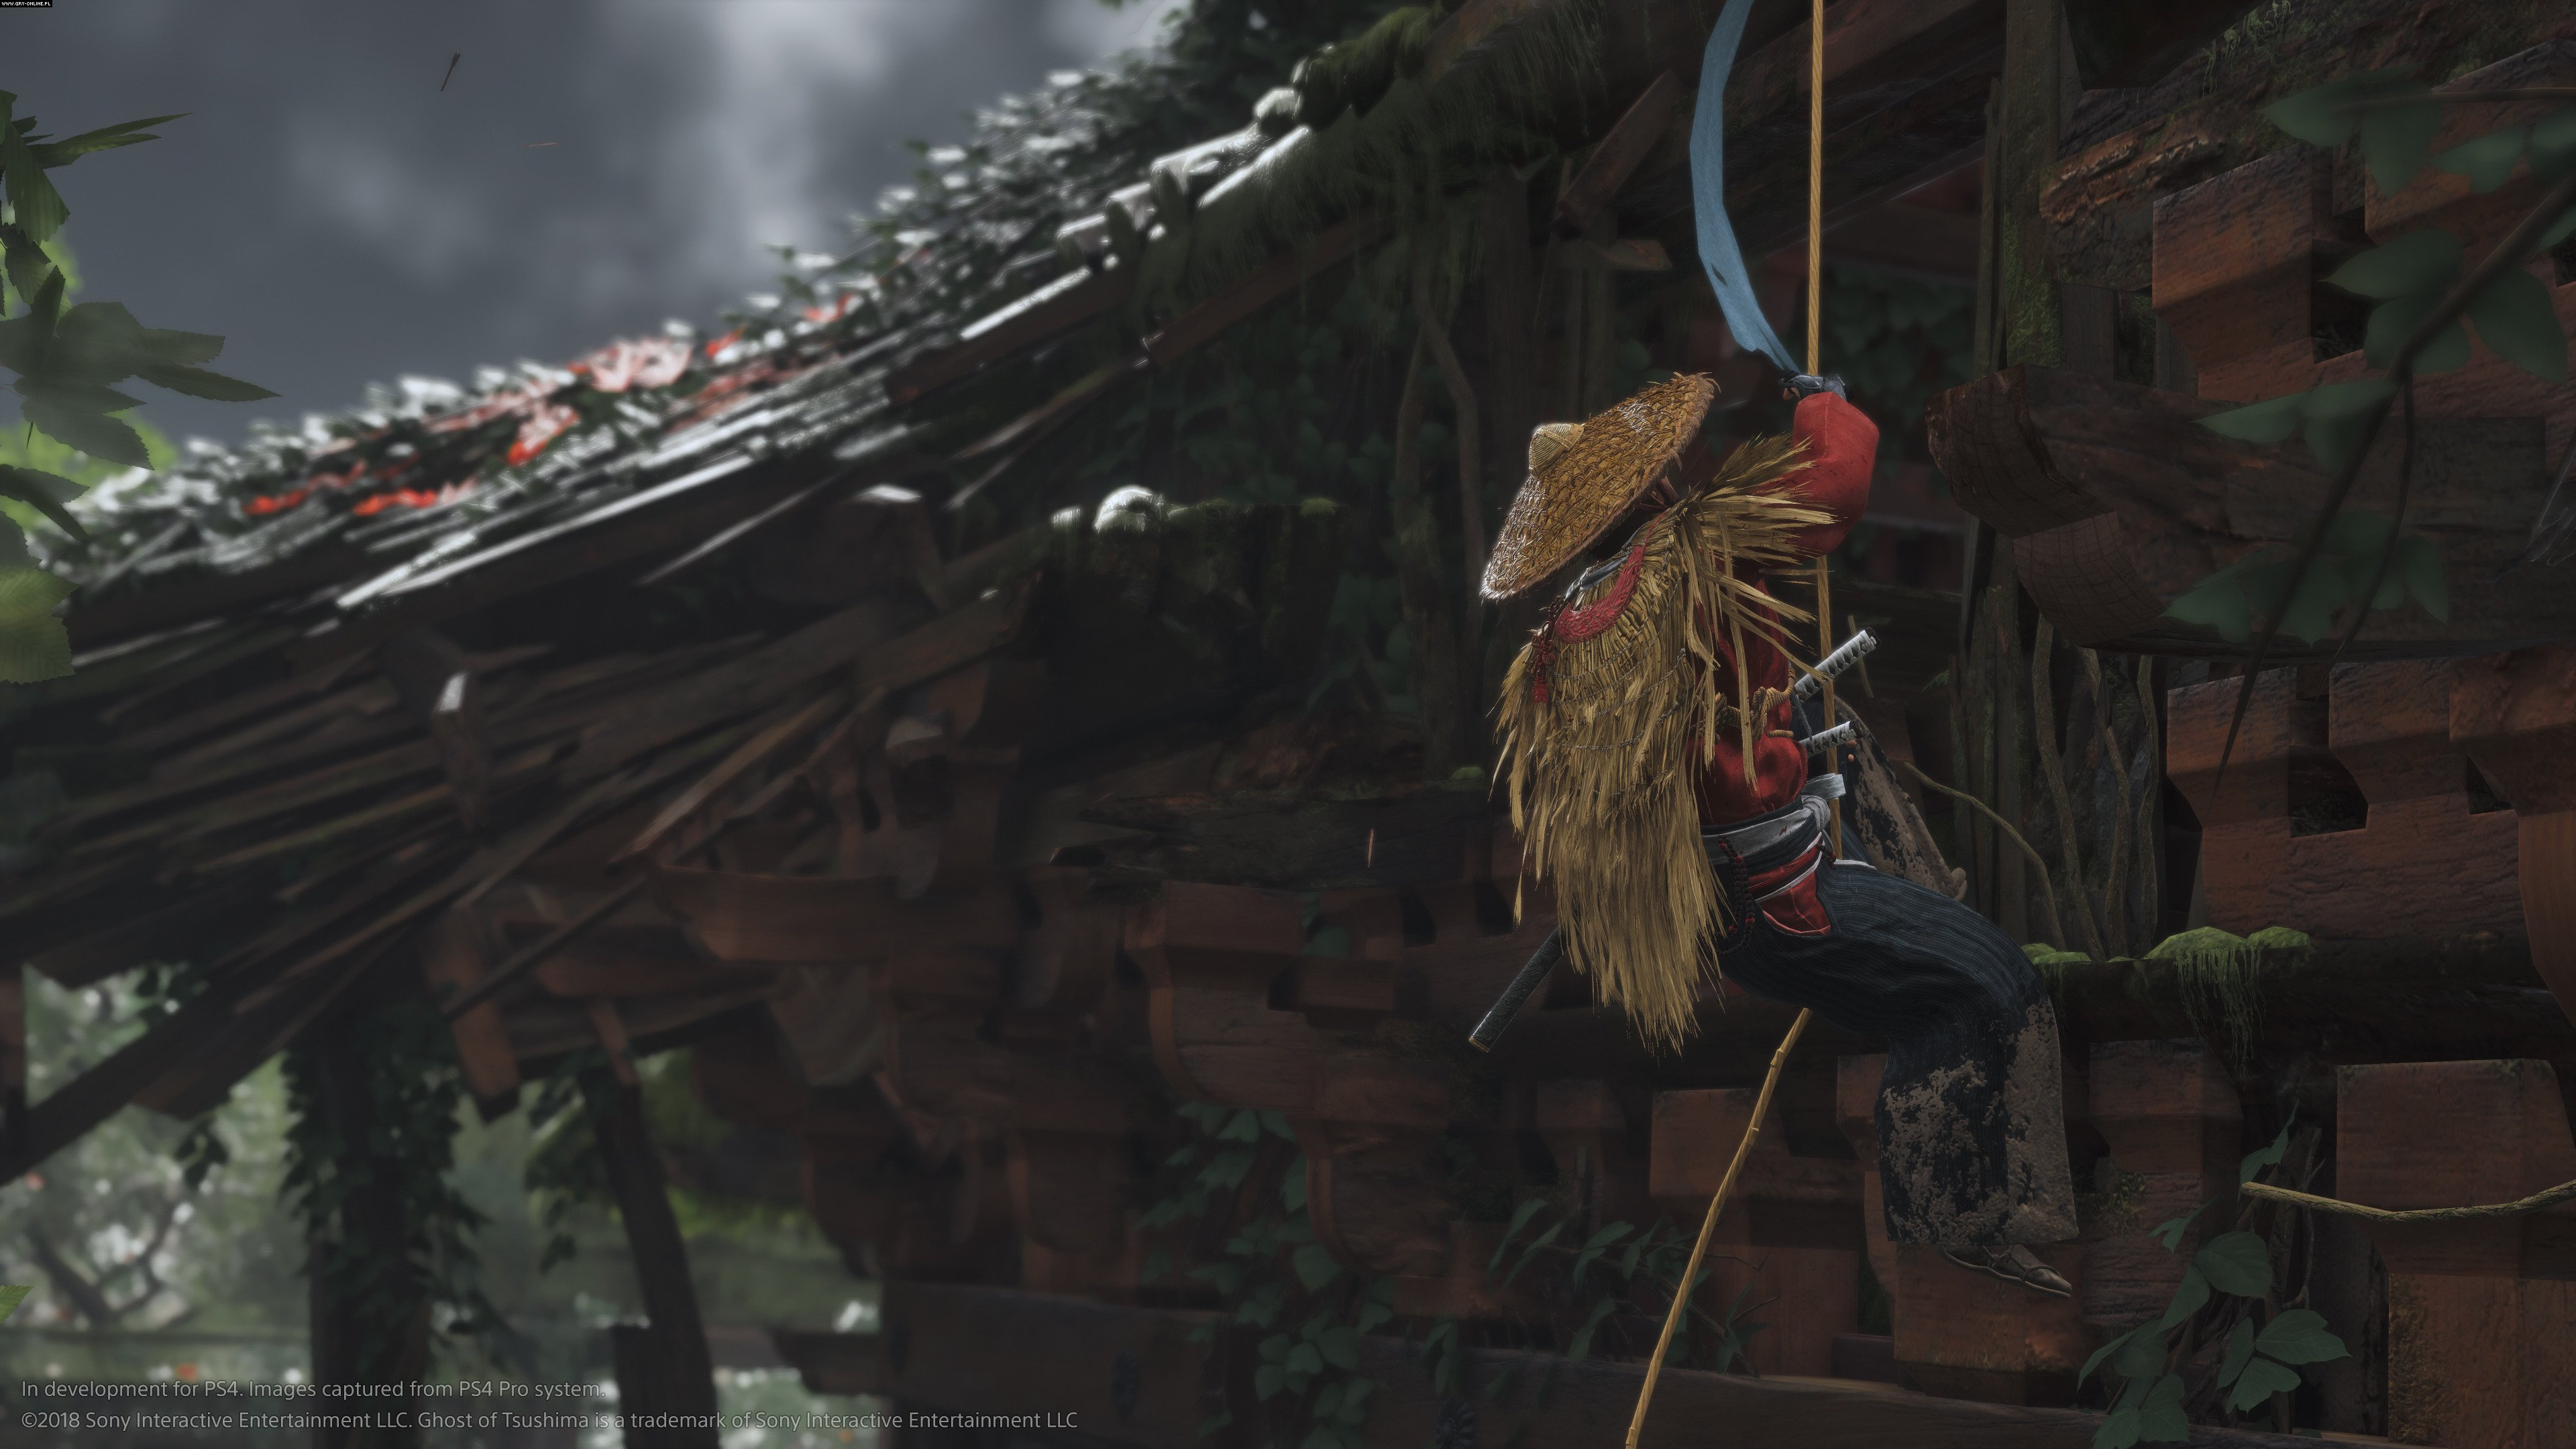 Ghost of Tsushima PS4 Gry Screen 6/15, Sucker Punch Productions, Sony Interactive Entertainment